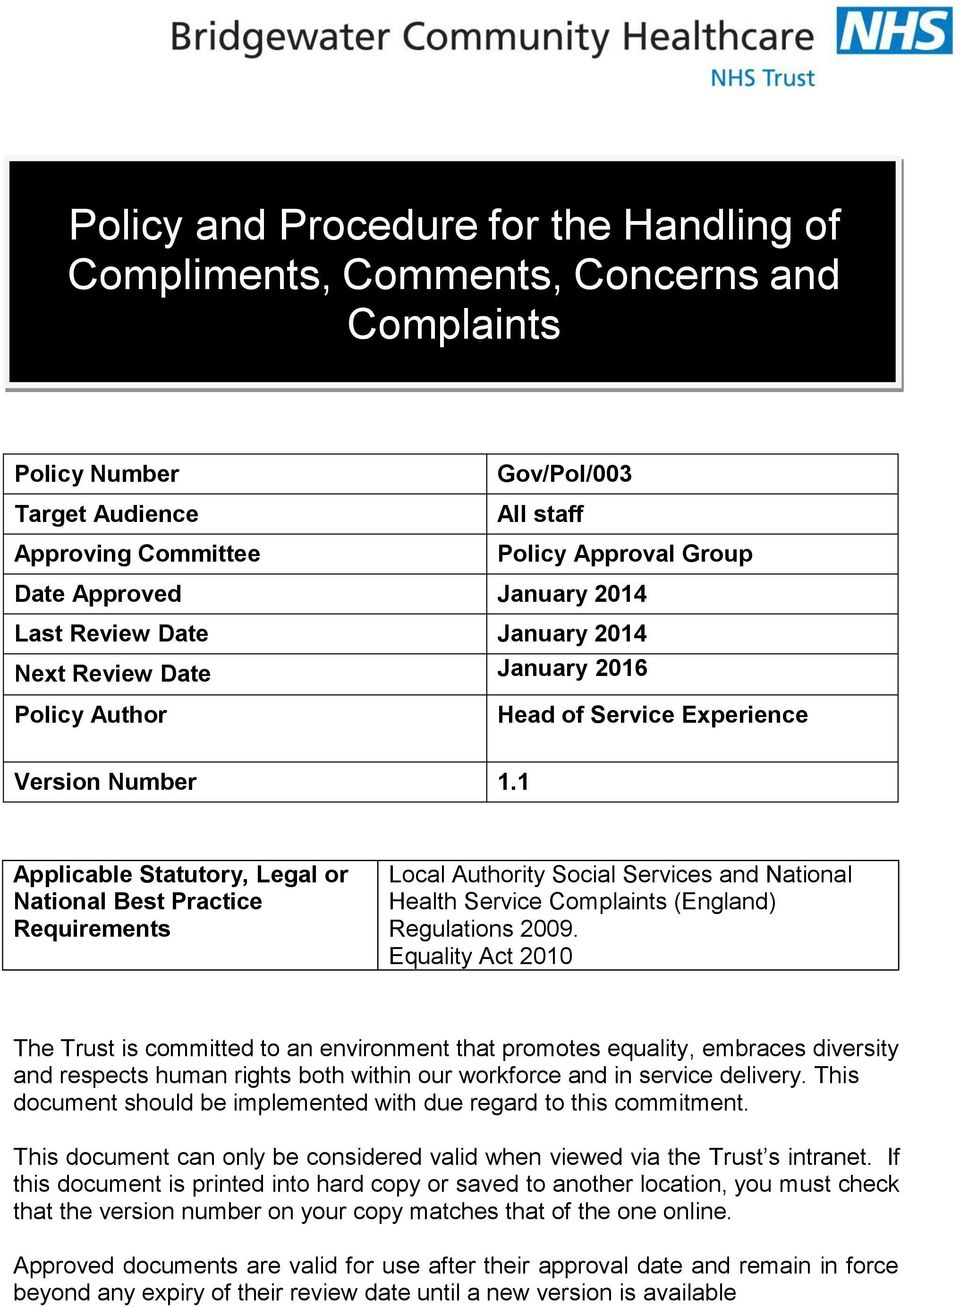 1 Applicable Statutory, Legal or National Best Practice Requirements Local Authority Social Services and National Health Service Complaints (England) Regulations 2009.